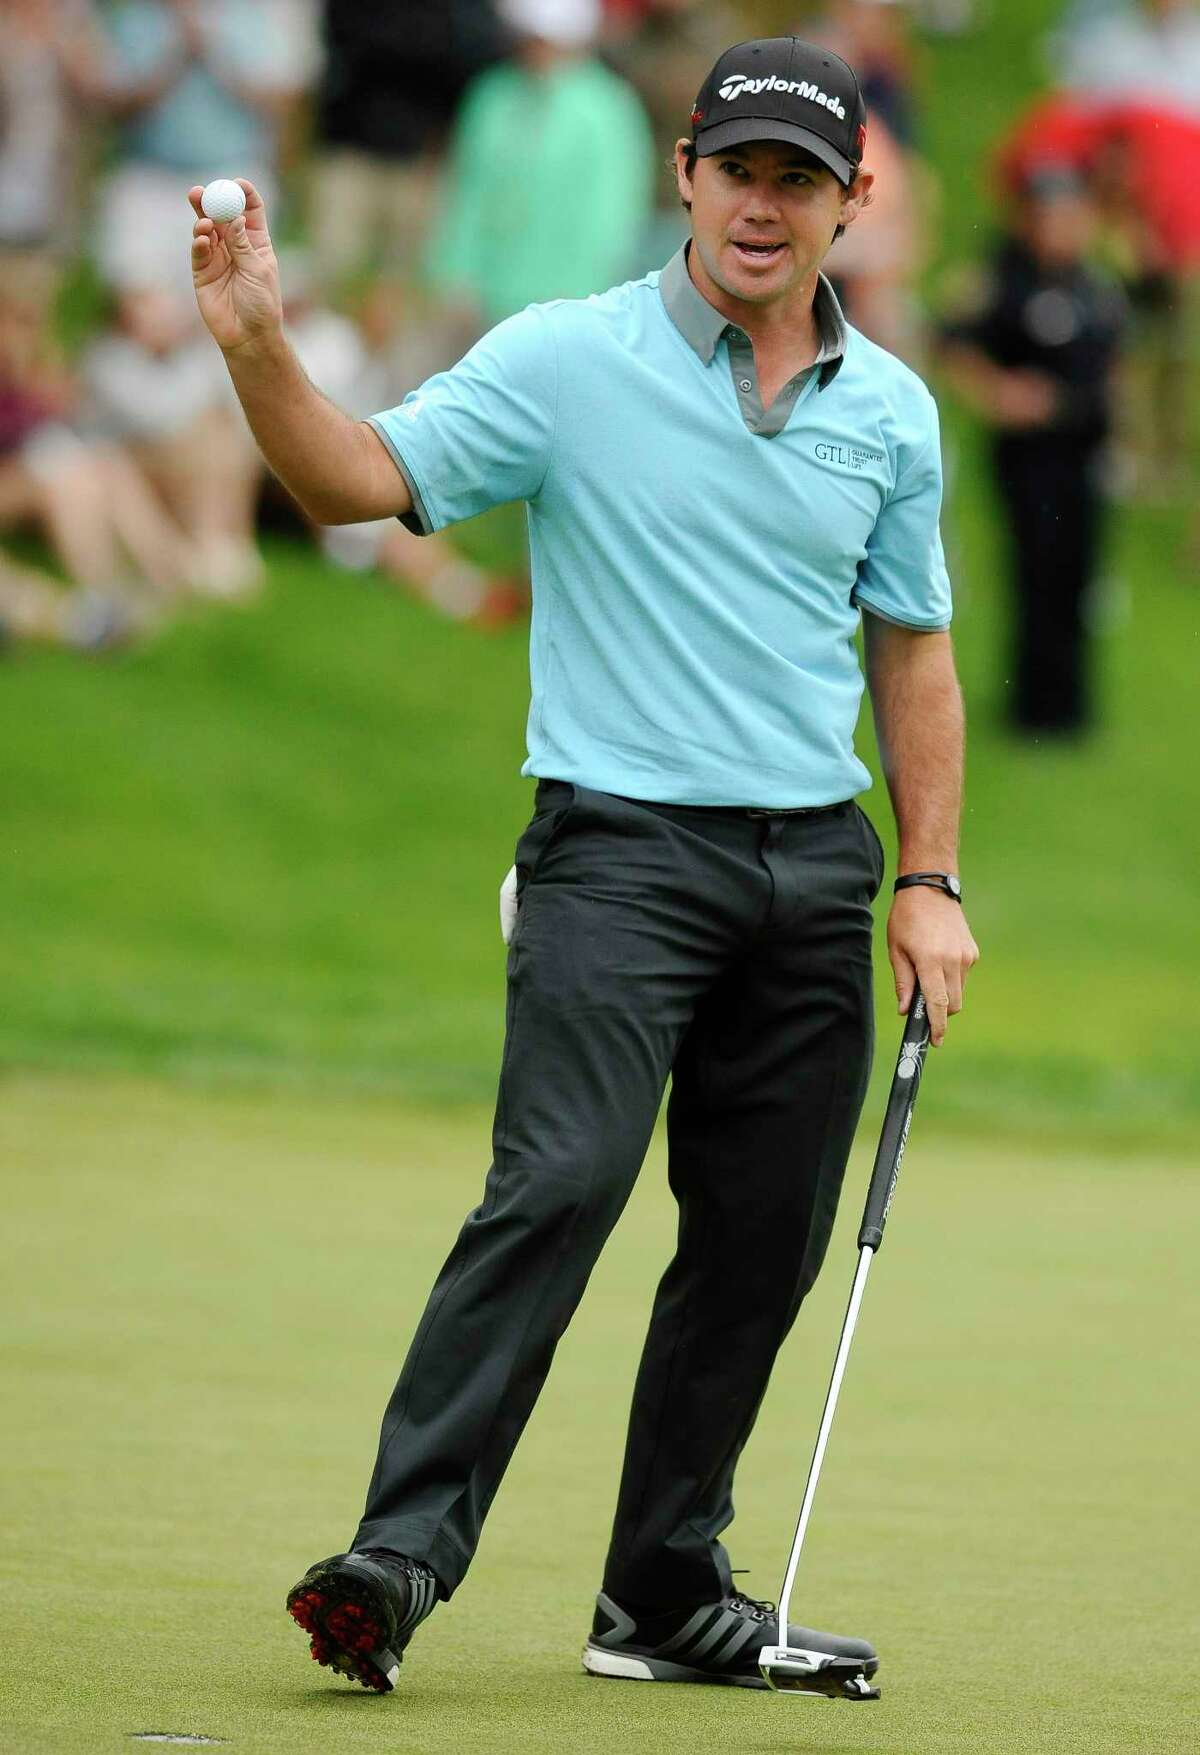 Brian Harman reacts after making a birdie on the 18th and taking the lead after three rounds of the Travelers Championship on Saturday in Cromwell.